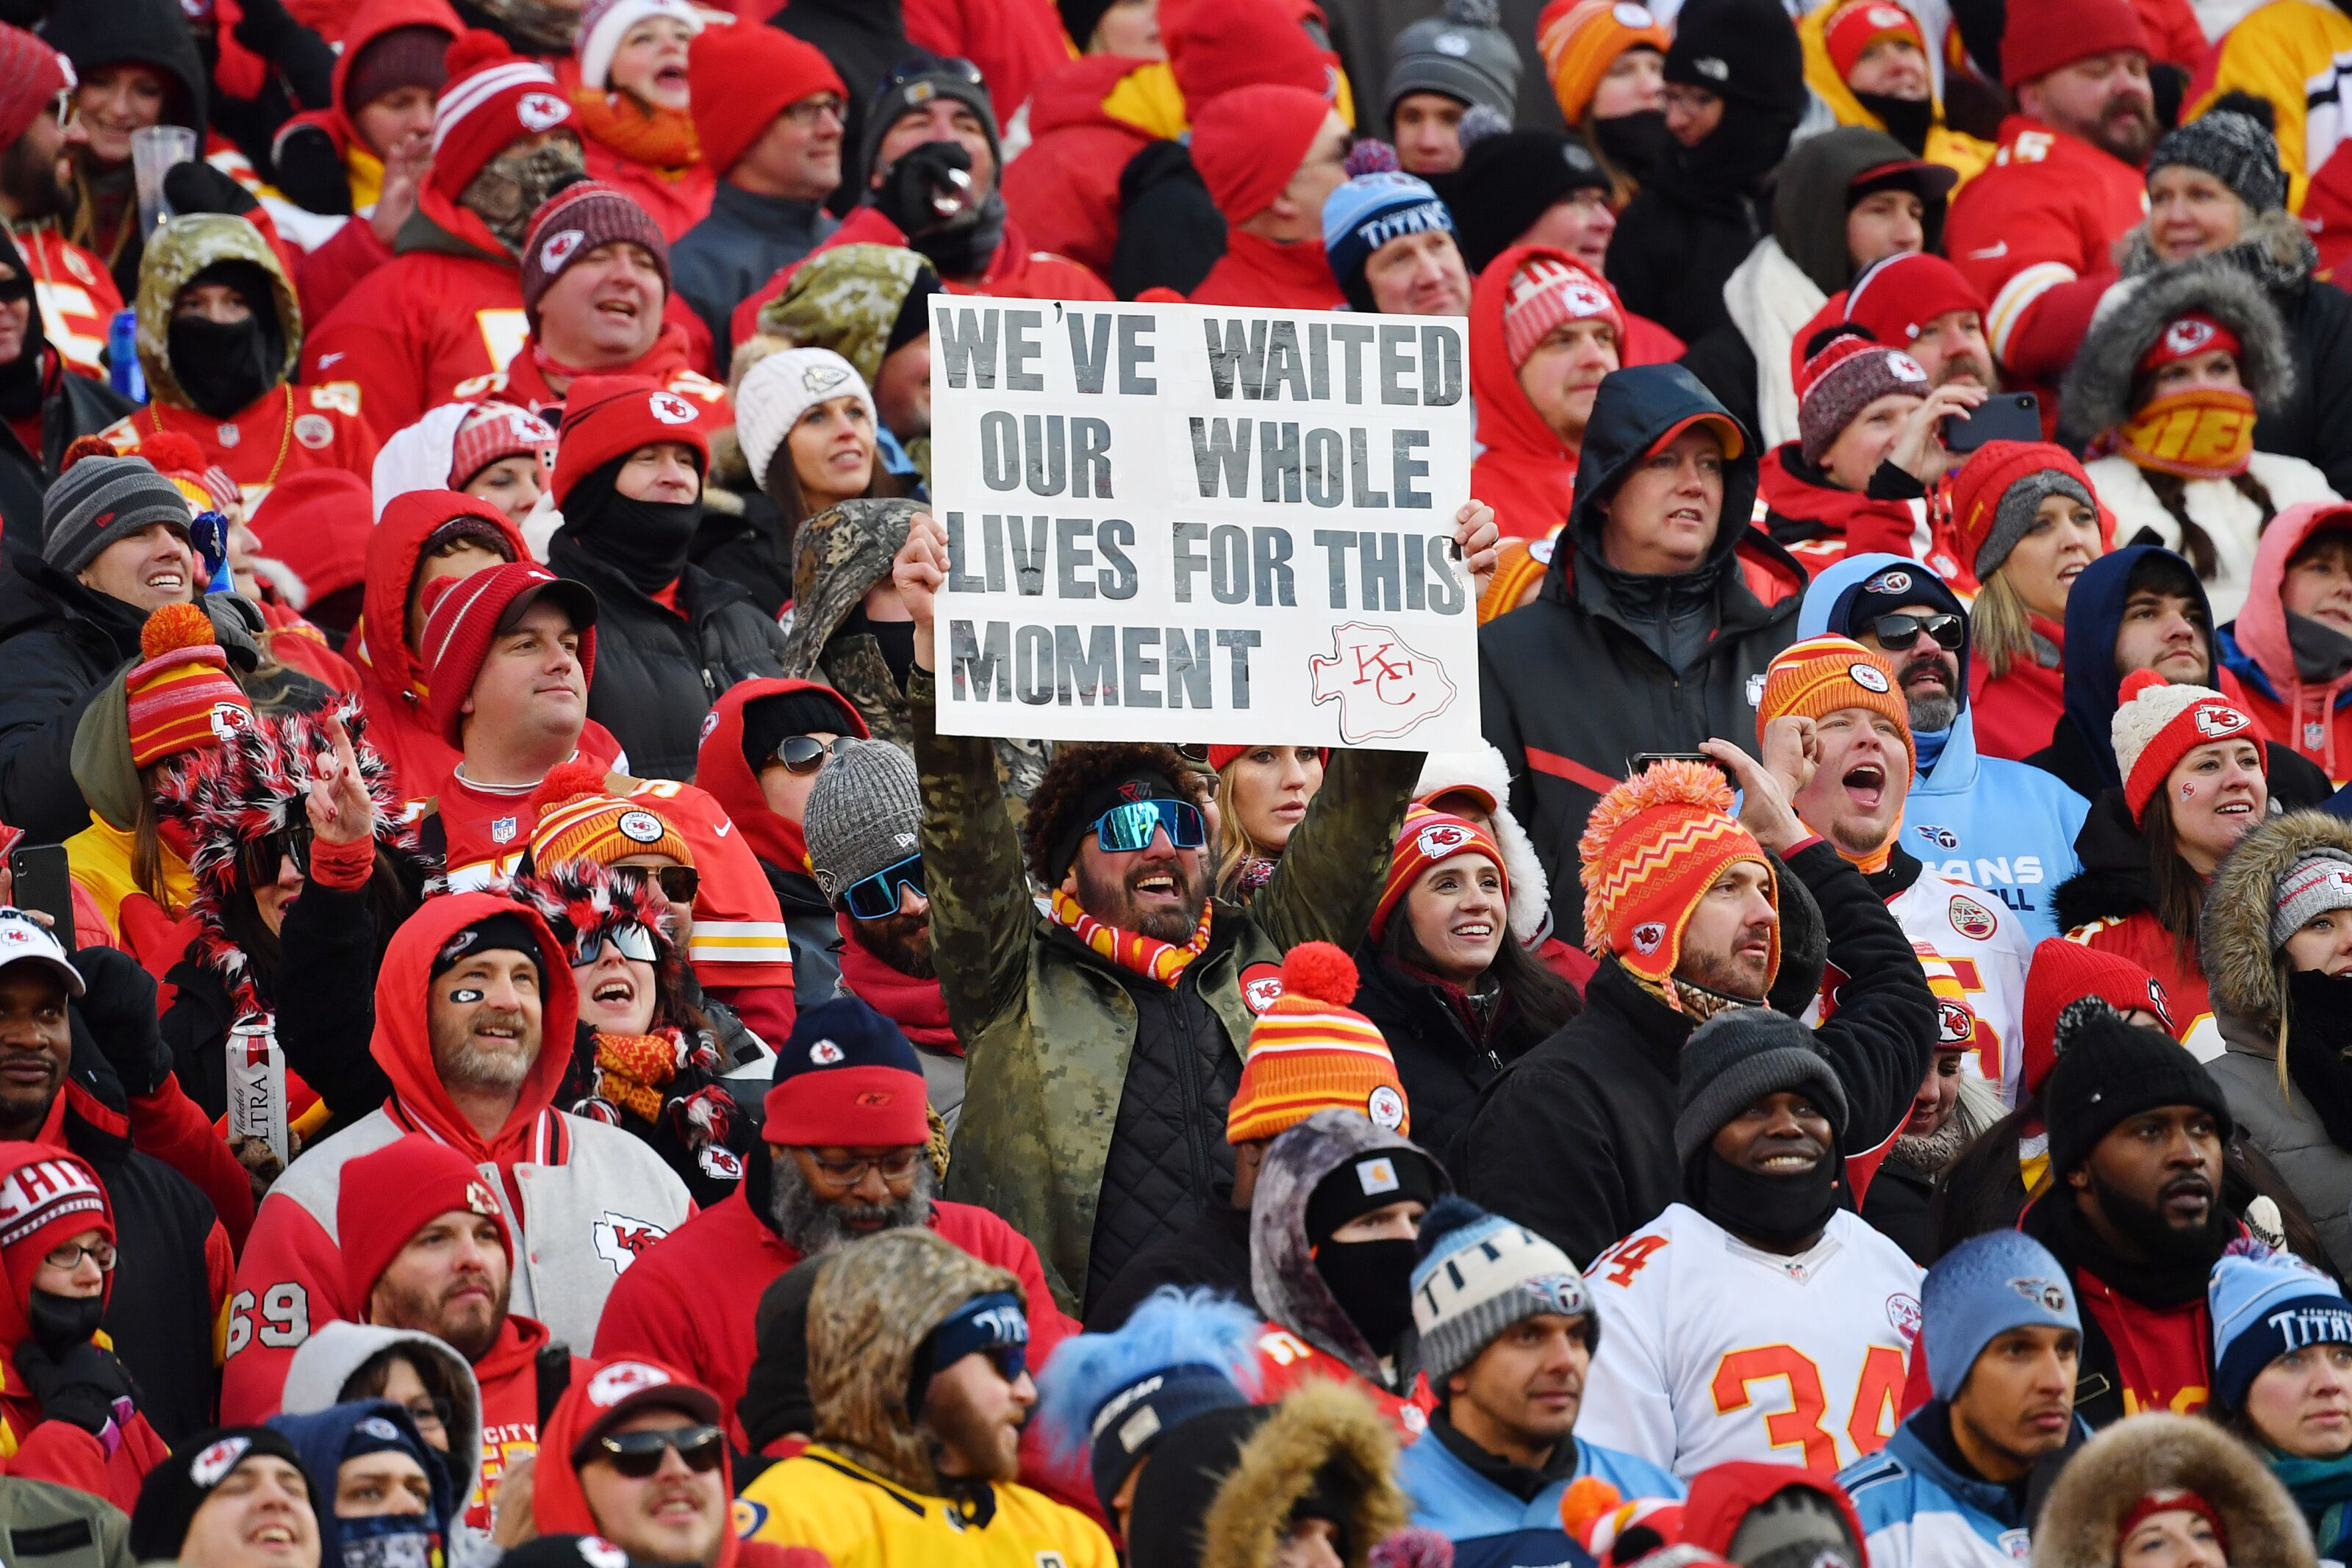 Chiefs open as favorites over 49ers in early Super Bowl LIV odds